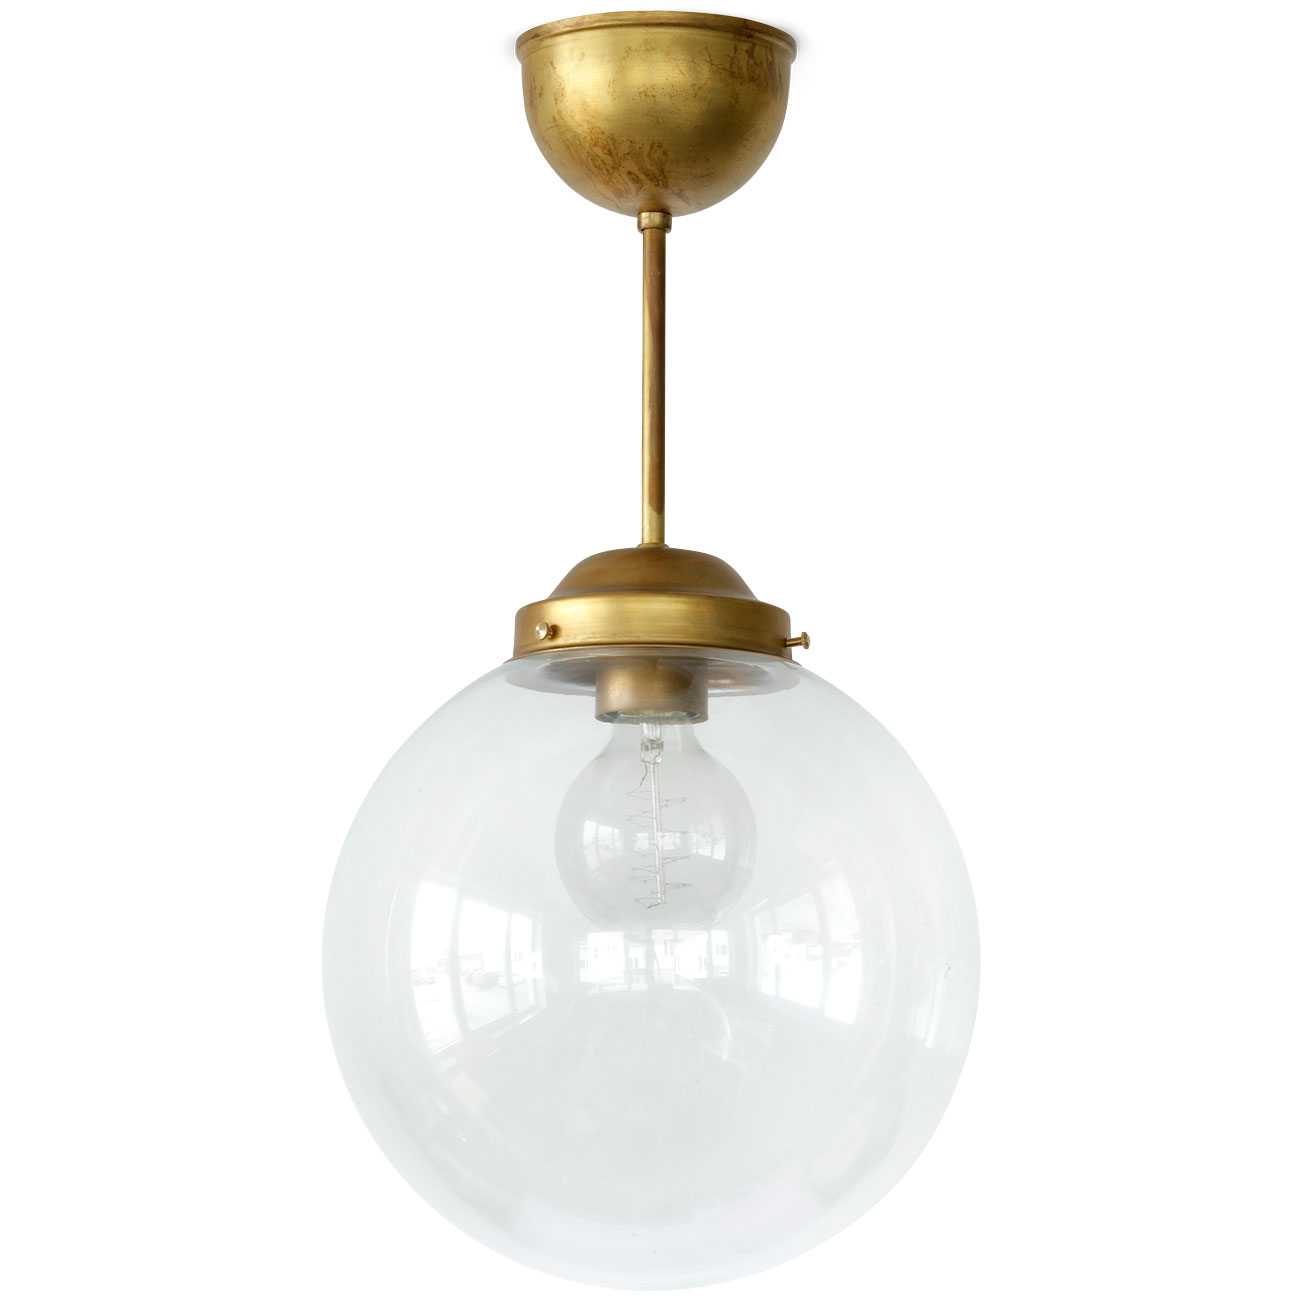 brass globe pendant light. Swedish Glass Globe Ceiling Light On Short Brass Rod Von KH Verkstad, Image 1: Pendant